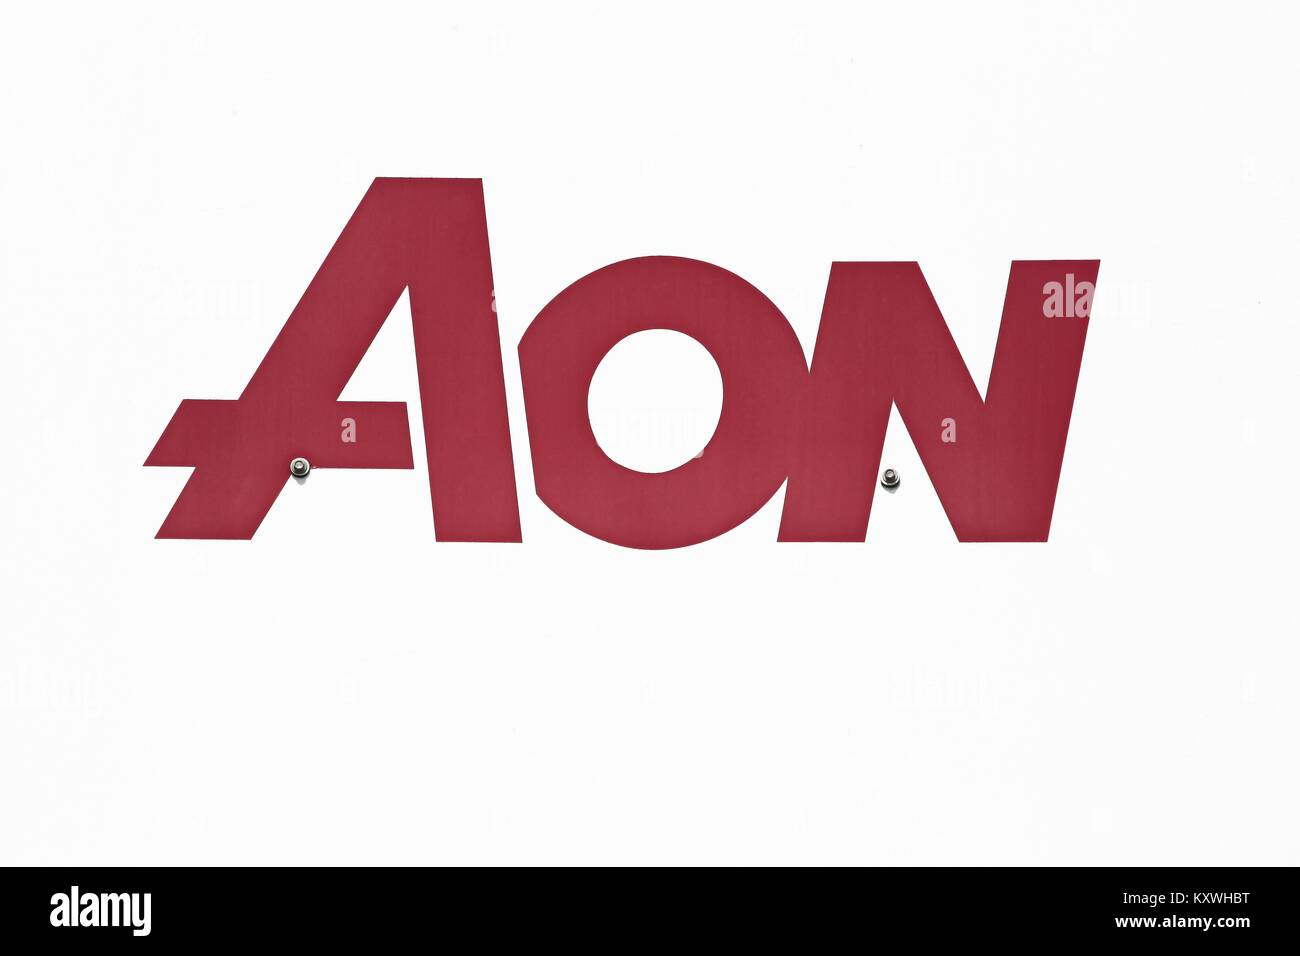 Kolding, Denmark - July 9, 2017: Aon logo on a panel. Aon is a British multinational corporation that provides risk - Stock Image